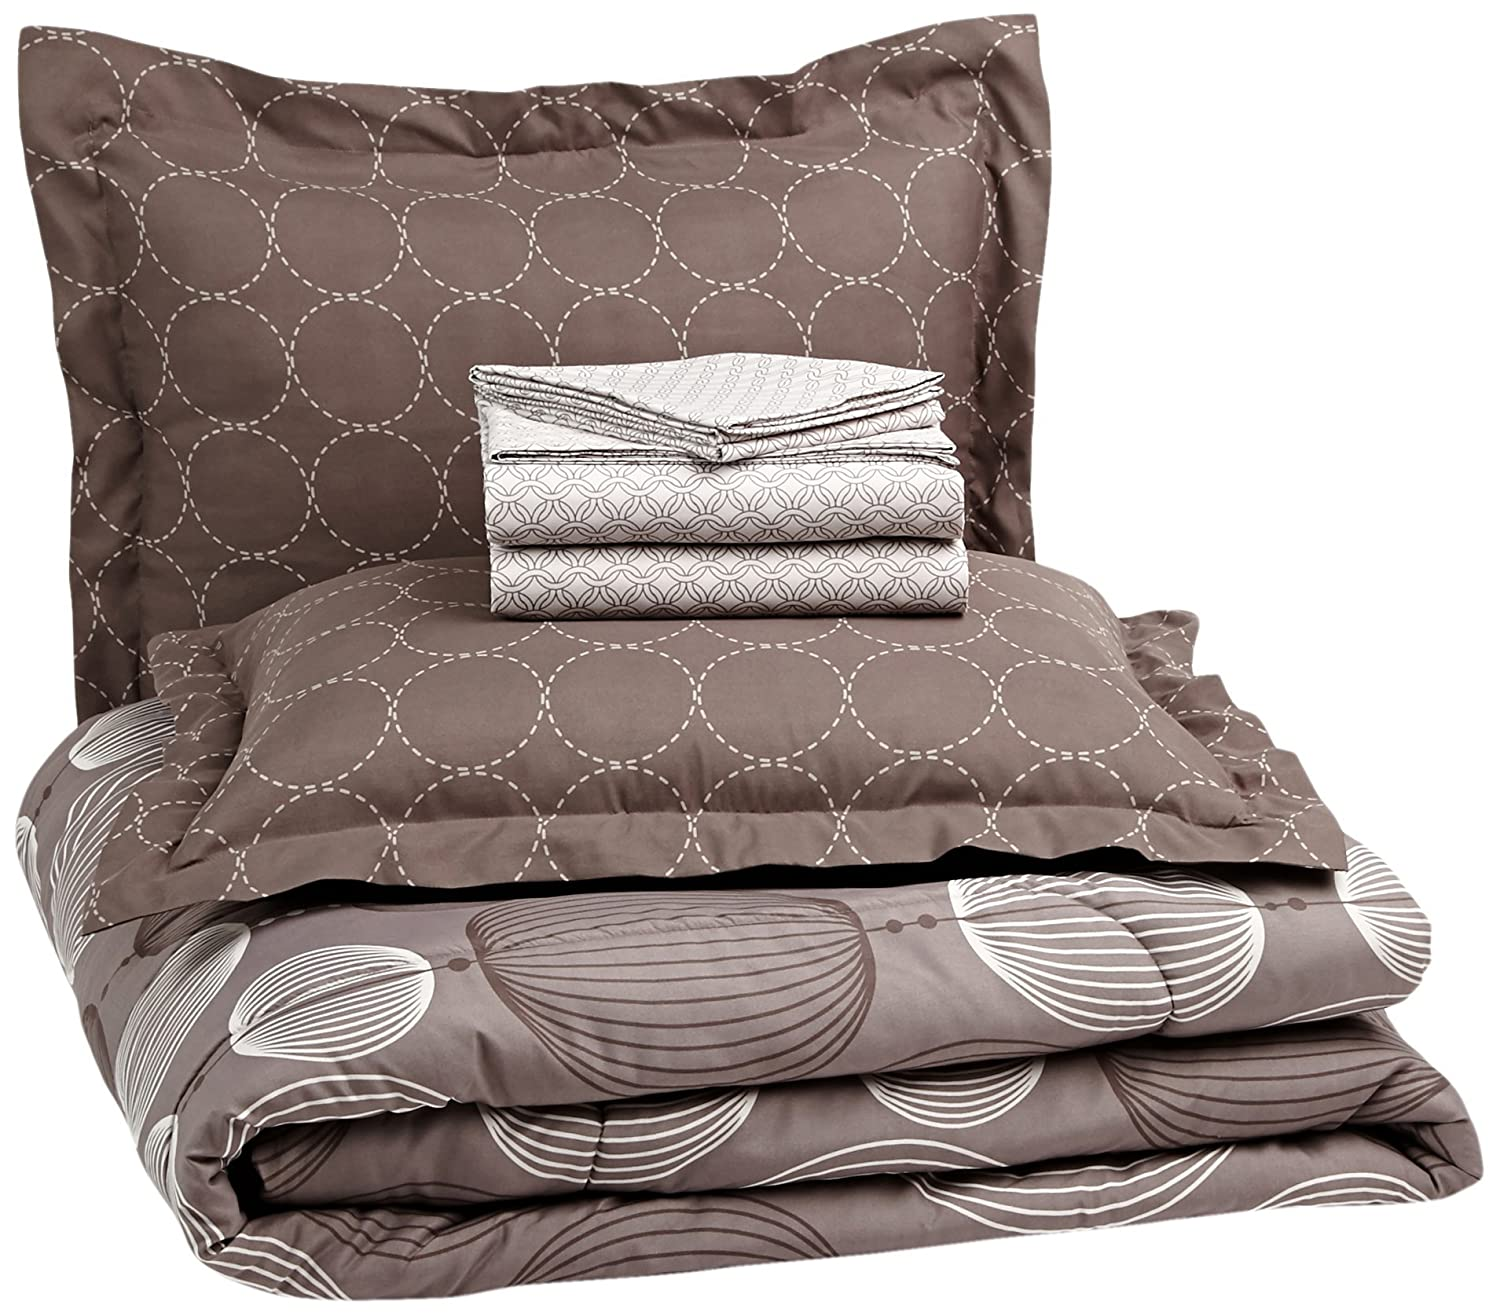 AmazonBasics 7-Piece Bed-In-A-Bag Comforter Bedding Set - Full or Queen, Industrial Grey, Microfiber, Ultra-Soft